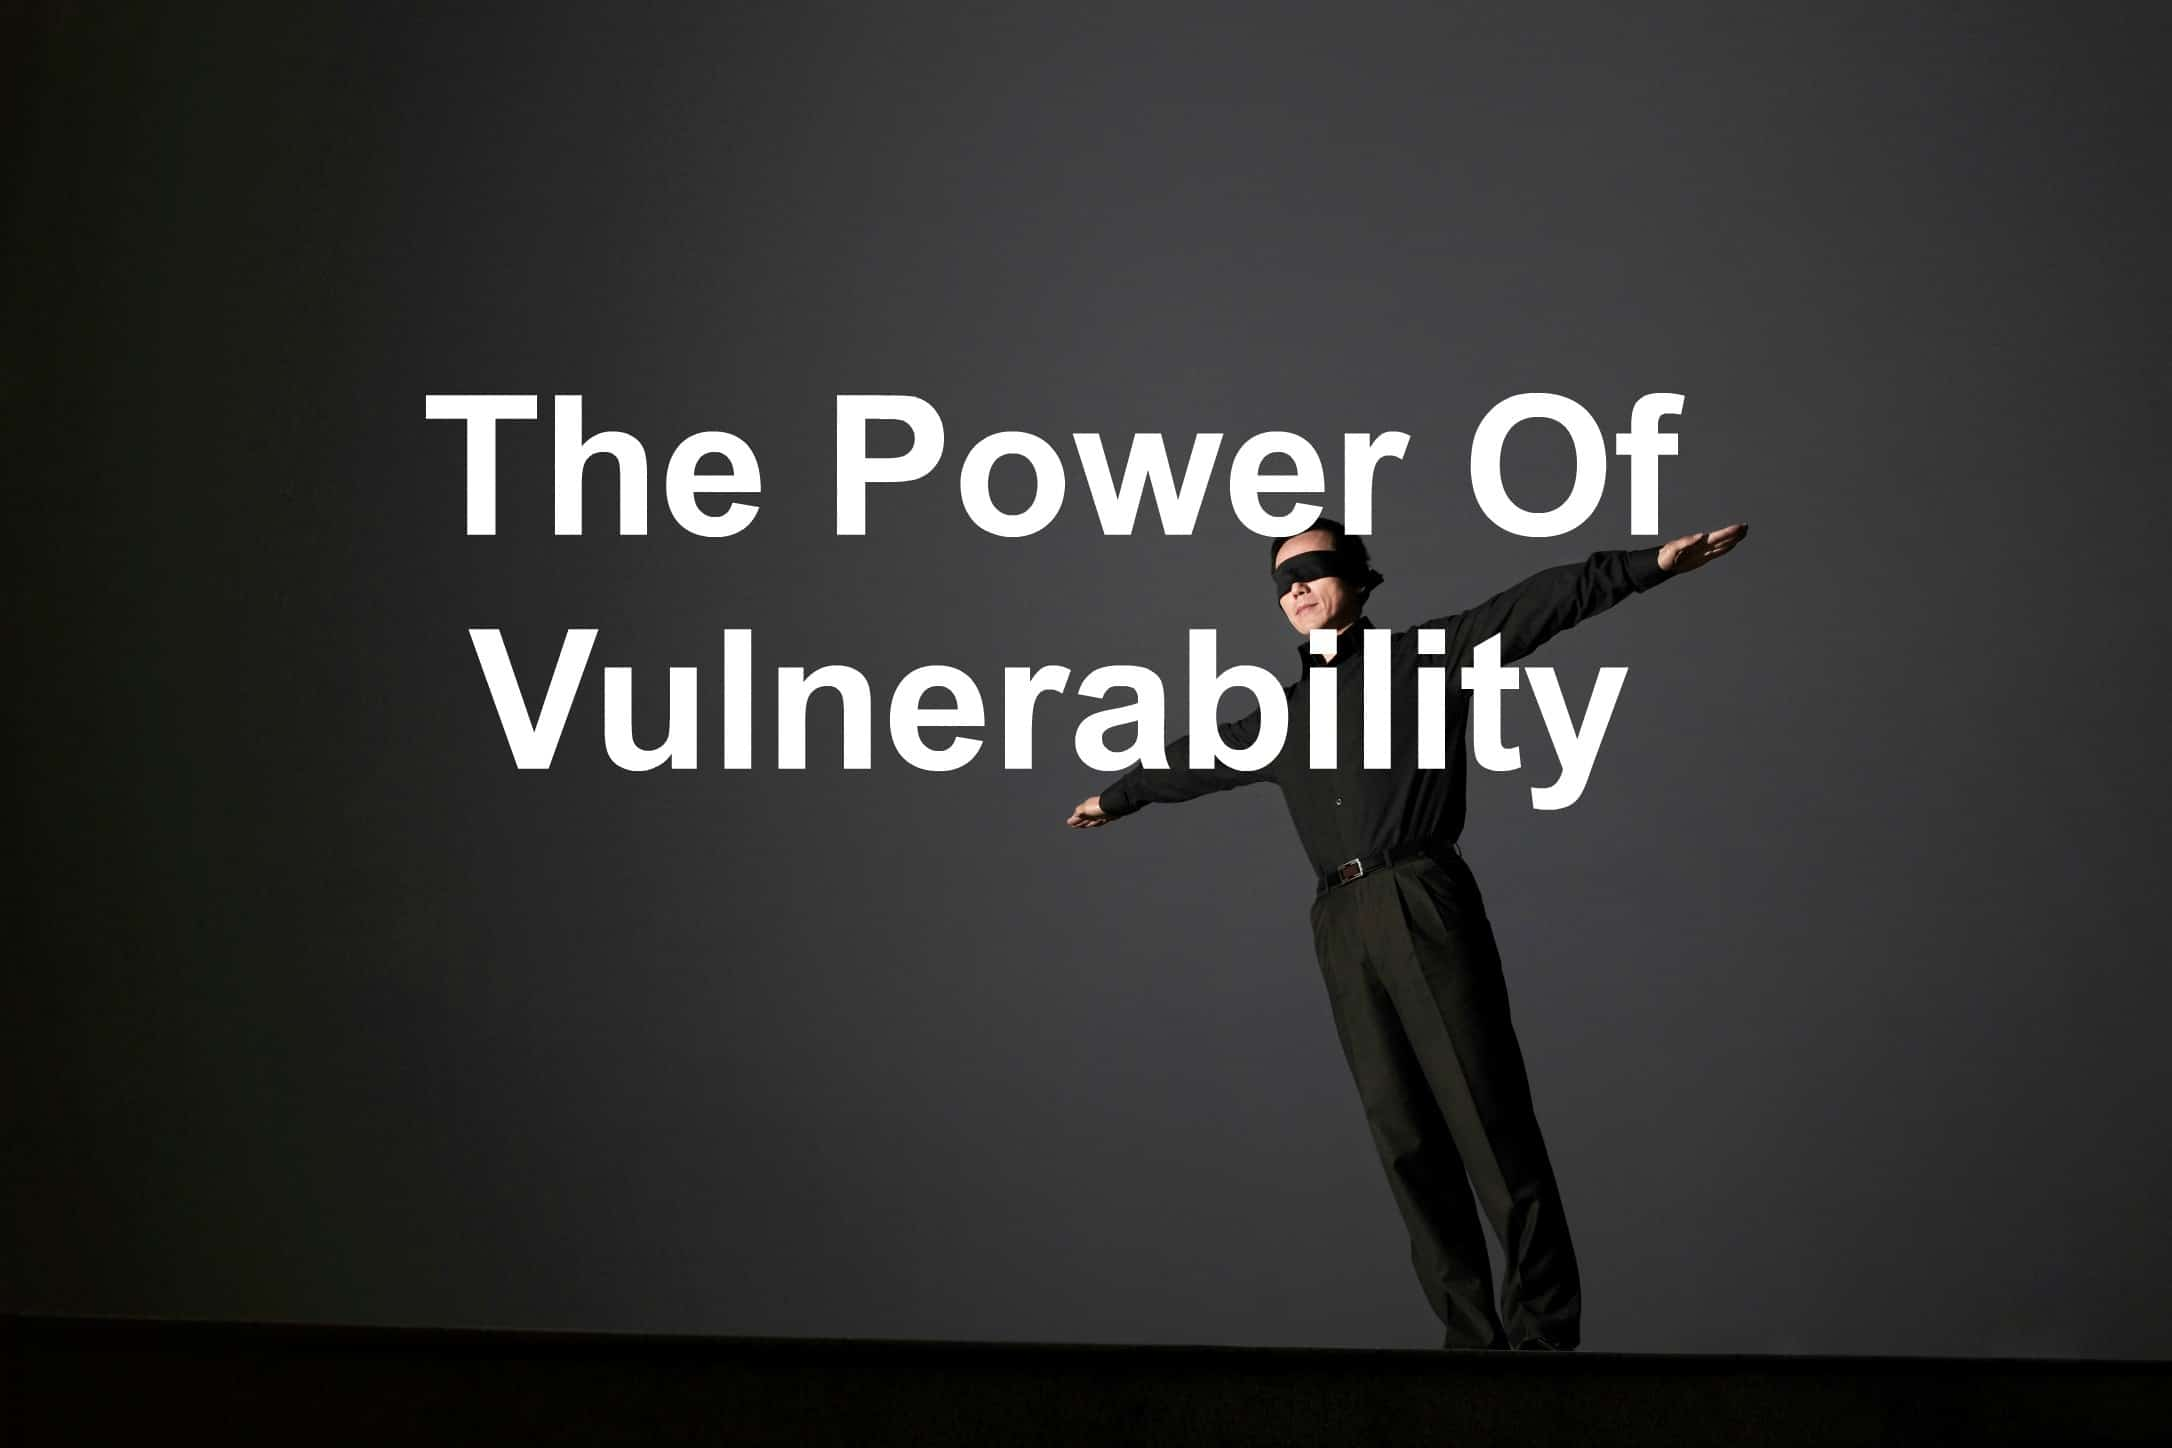 Being vulnerable is powerful